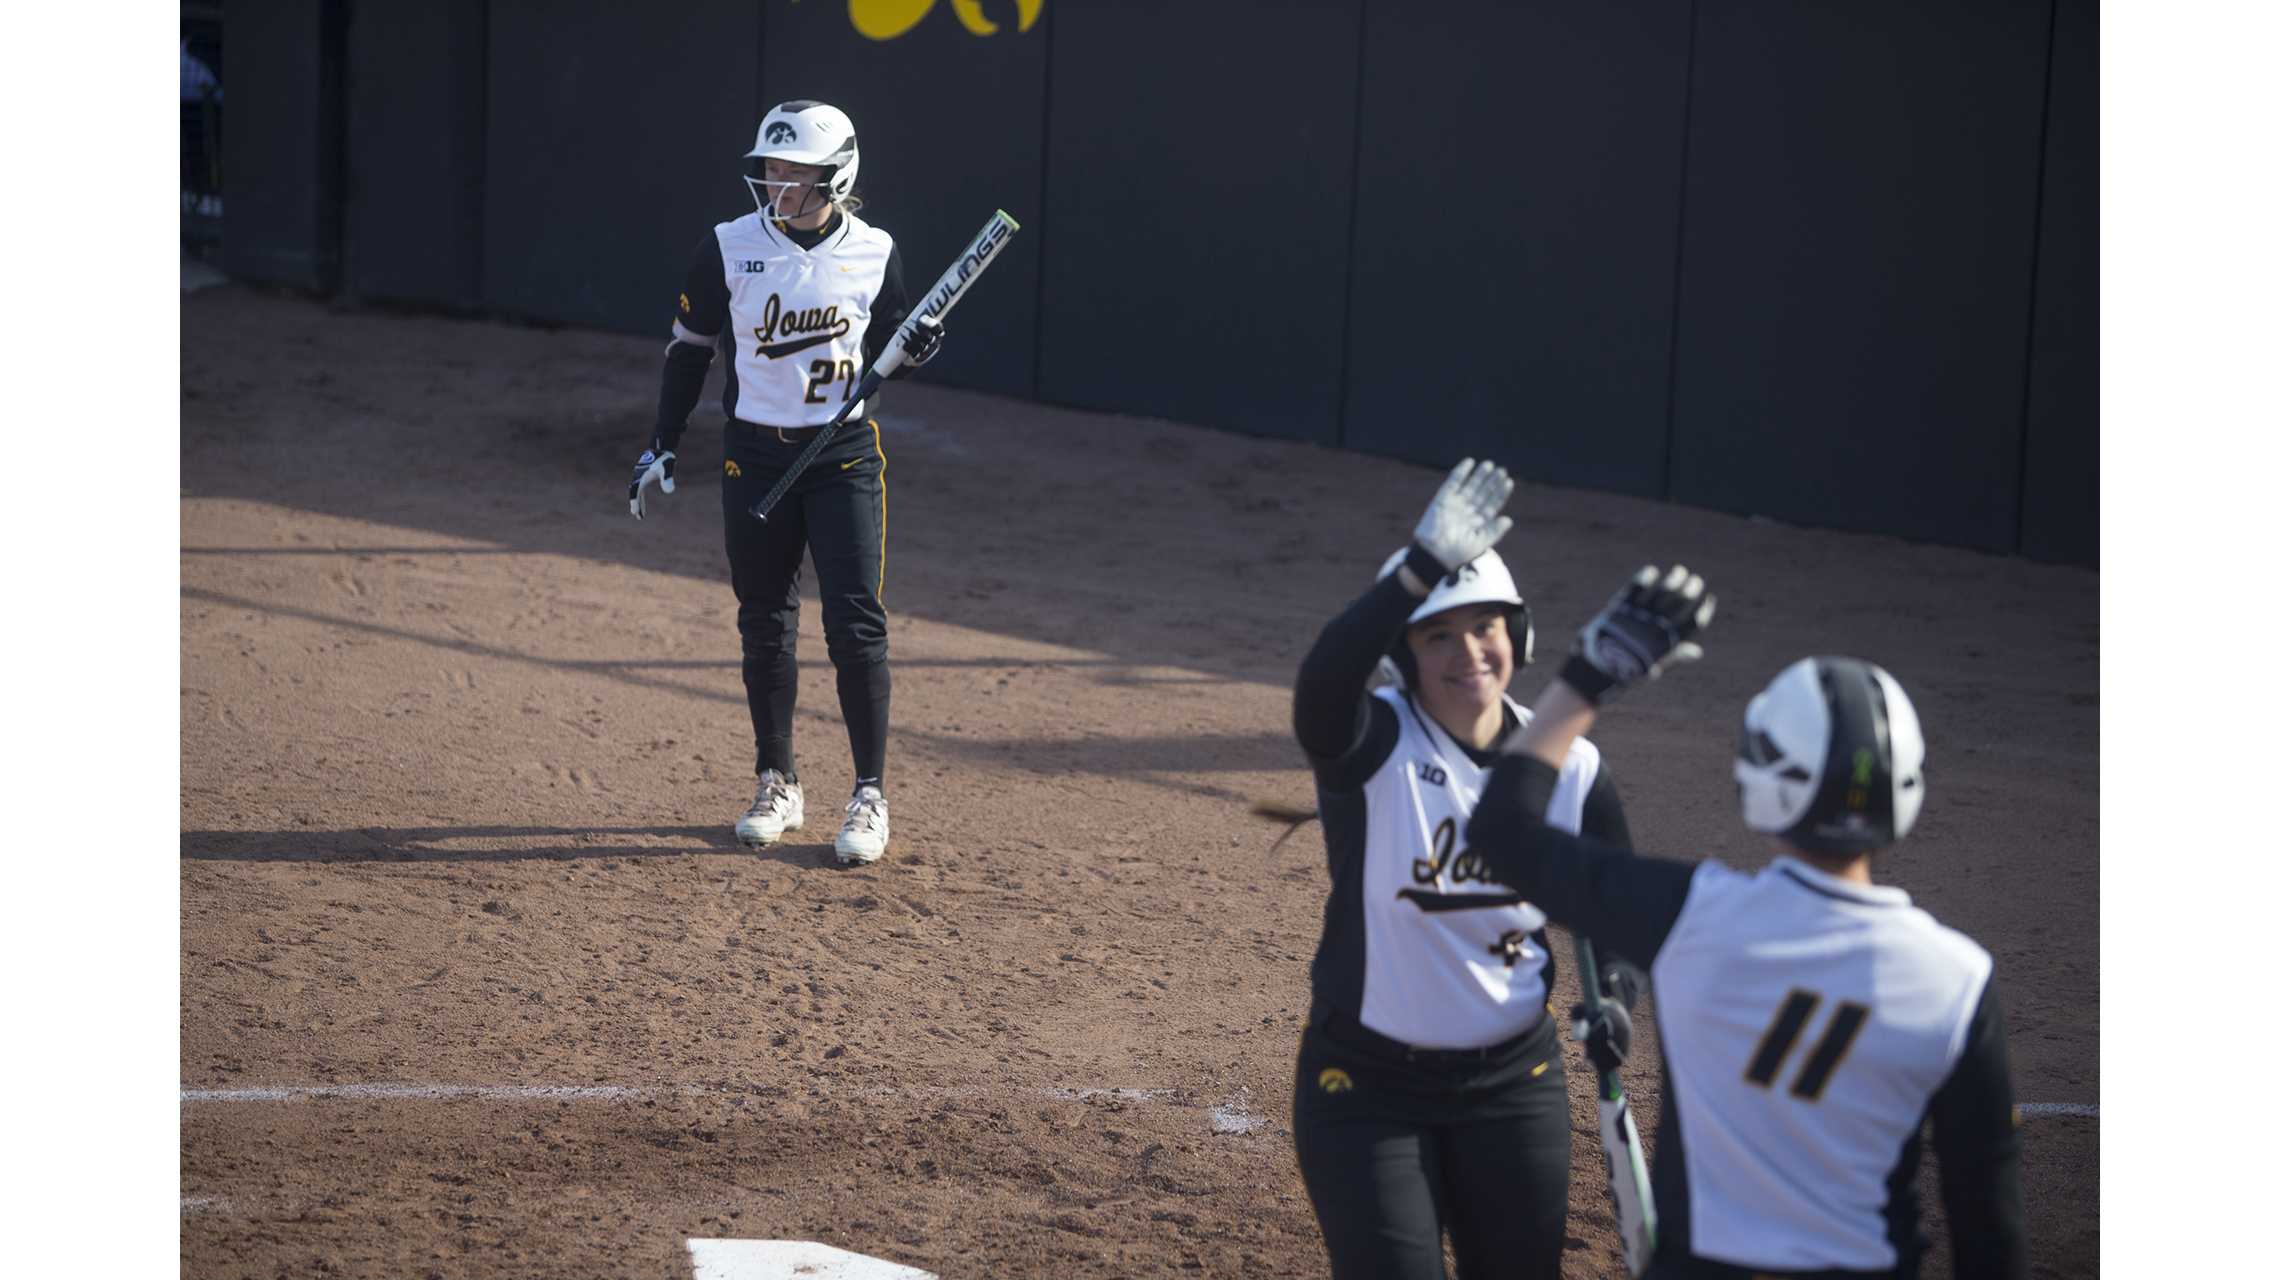 Photos: Iowa softball vs. SDSU